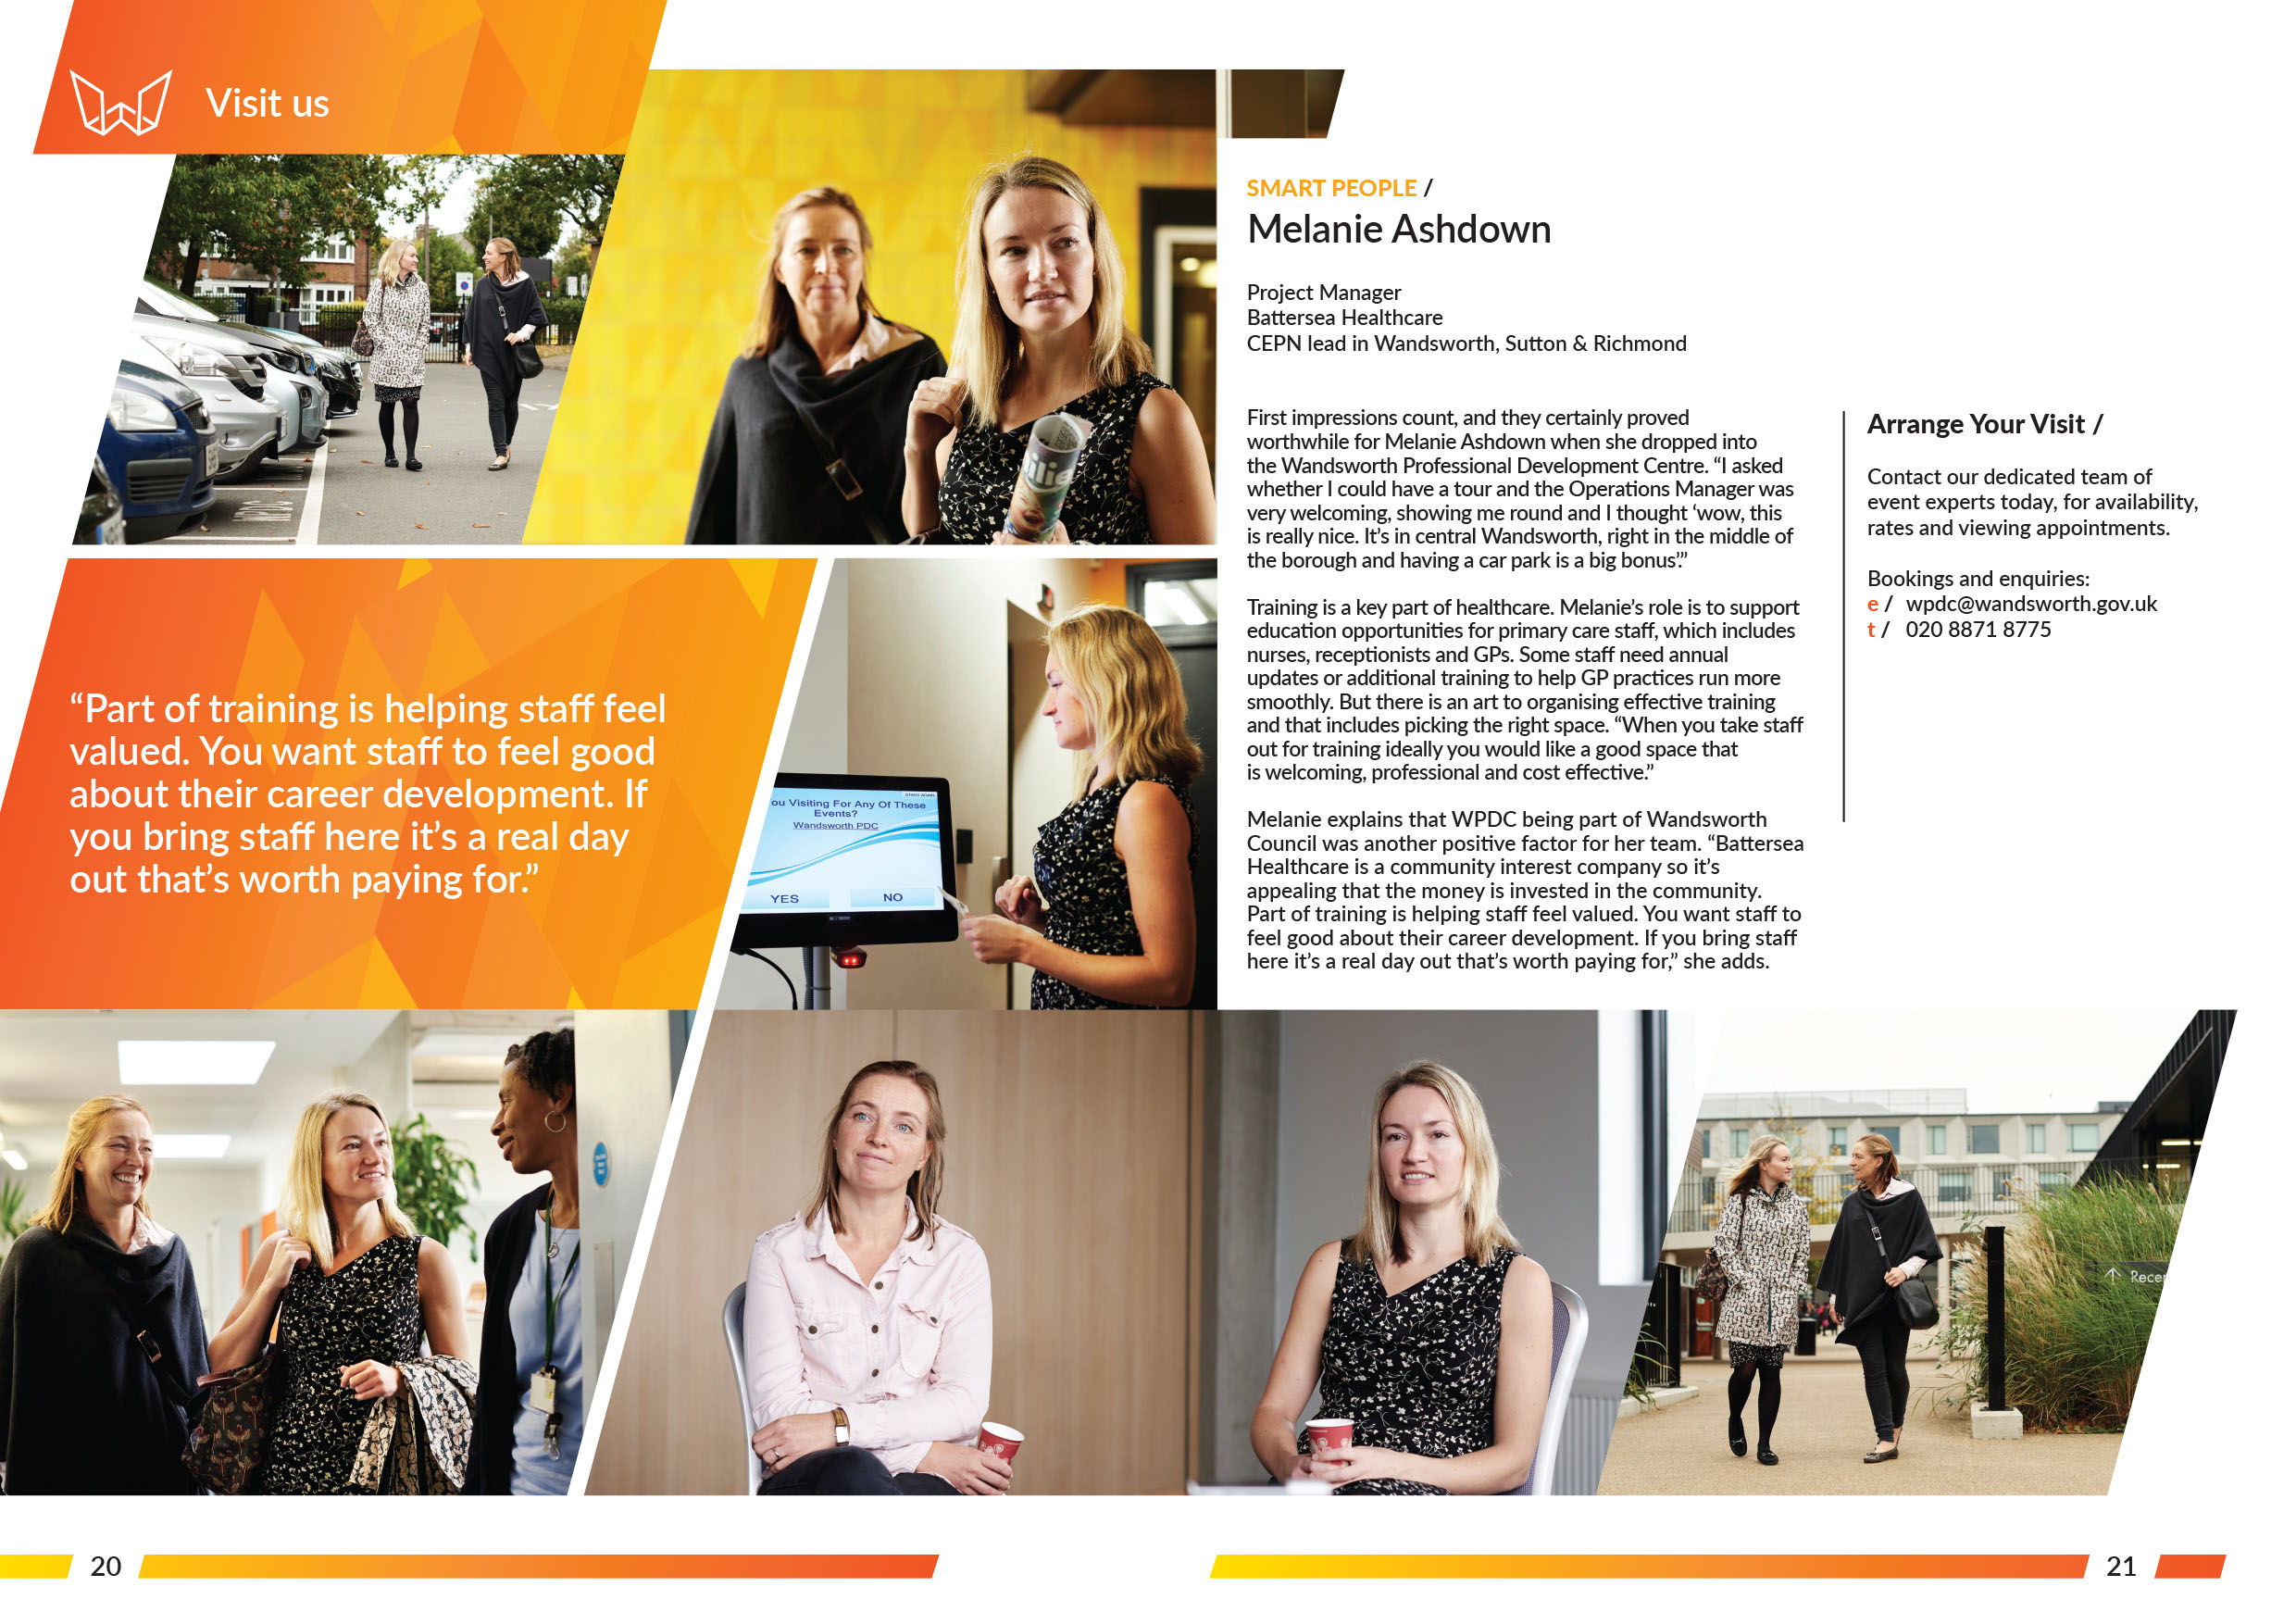 Wandsworth Professional Development Centre, Interview, Designed by West Creative